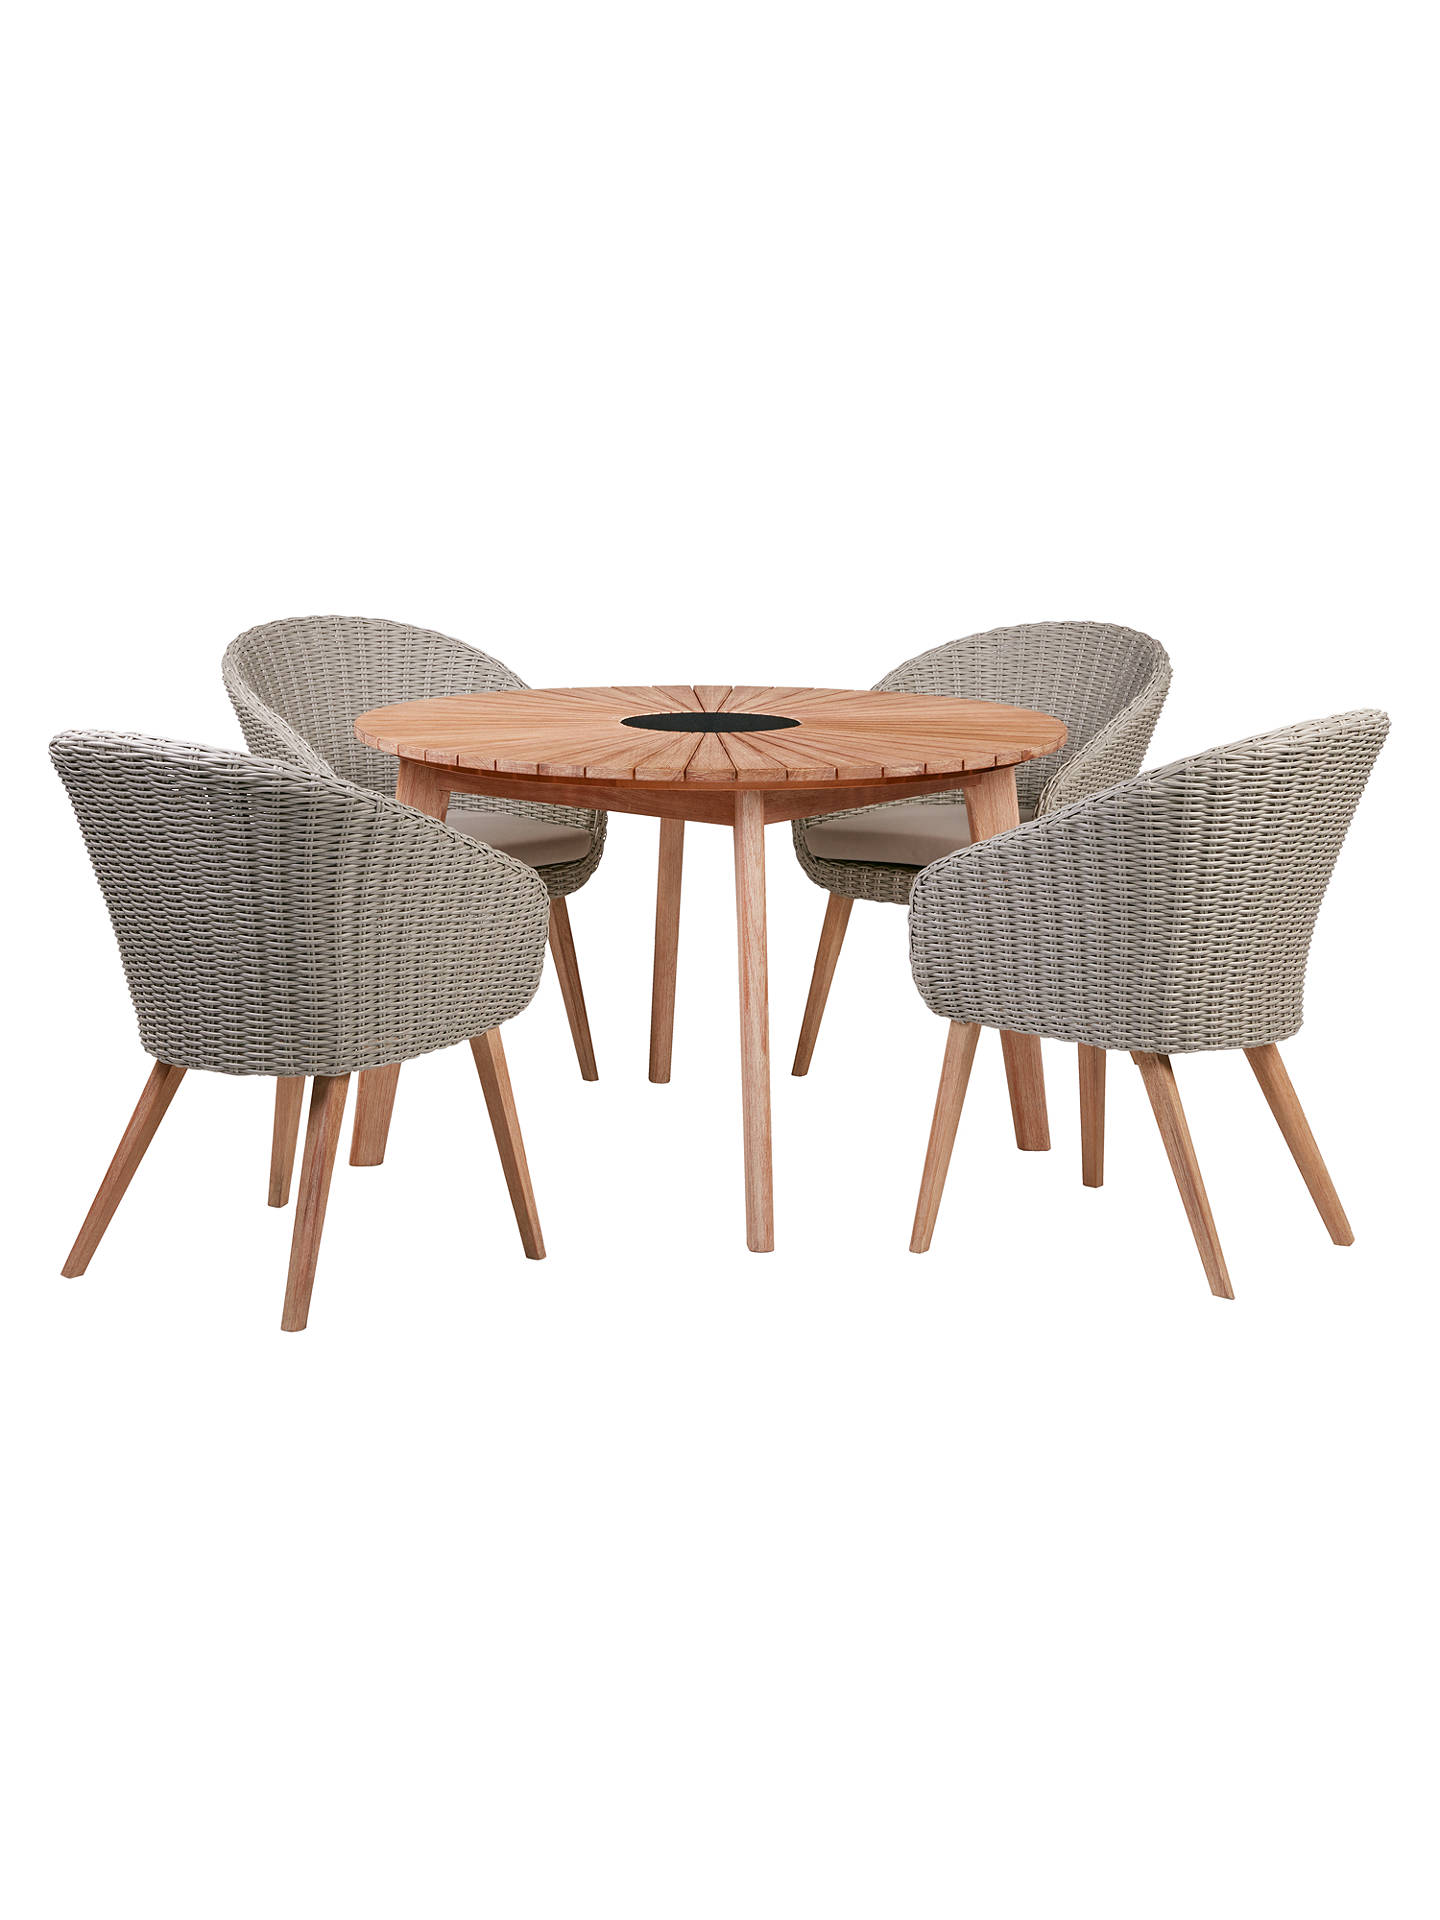 Buyjohn lewis partners sol 4 seater round garden dining table chairs set fsc